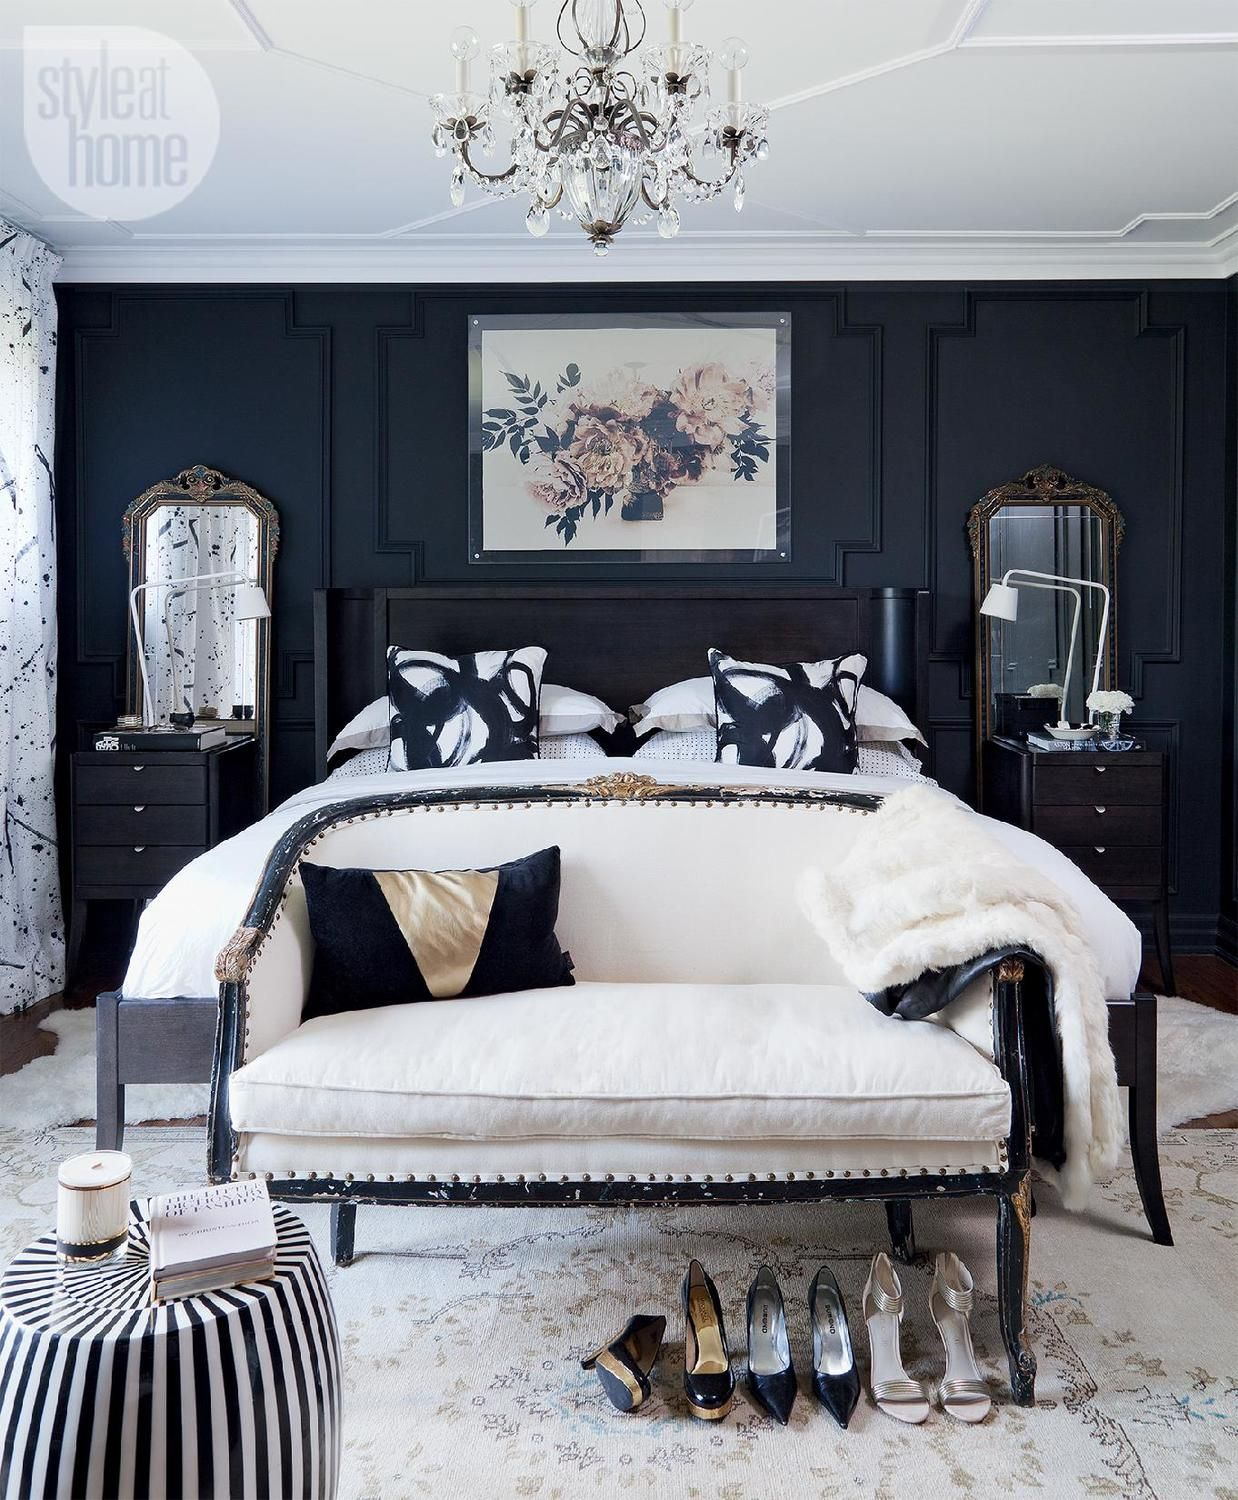 Bedroom Decor Moody And Dramatic Master Suite With Images